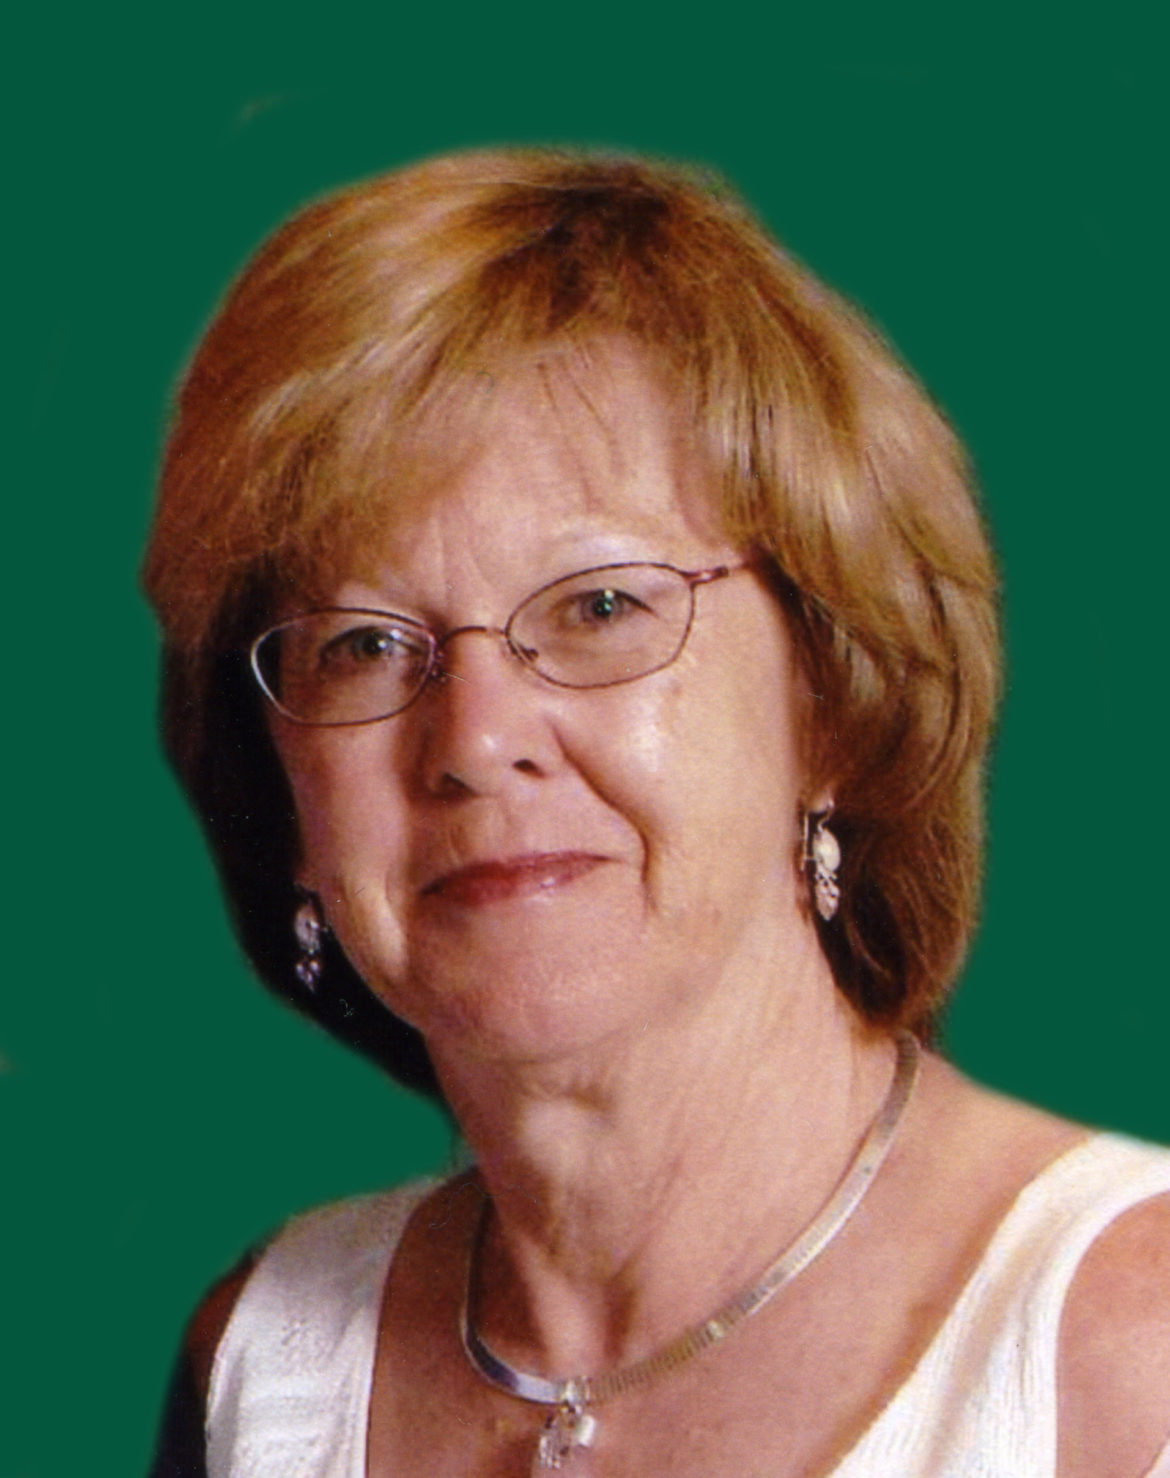 Sarah Q  Conly, 71, of Lower Saucon (Obituary Brought to You by